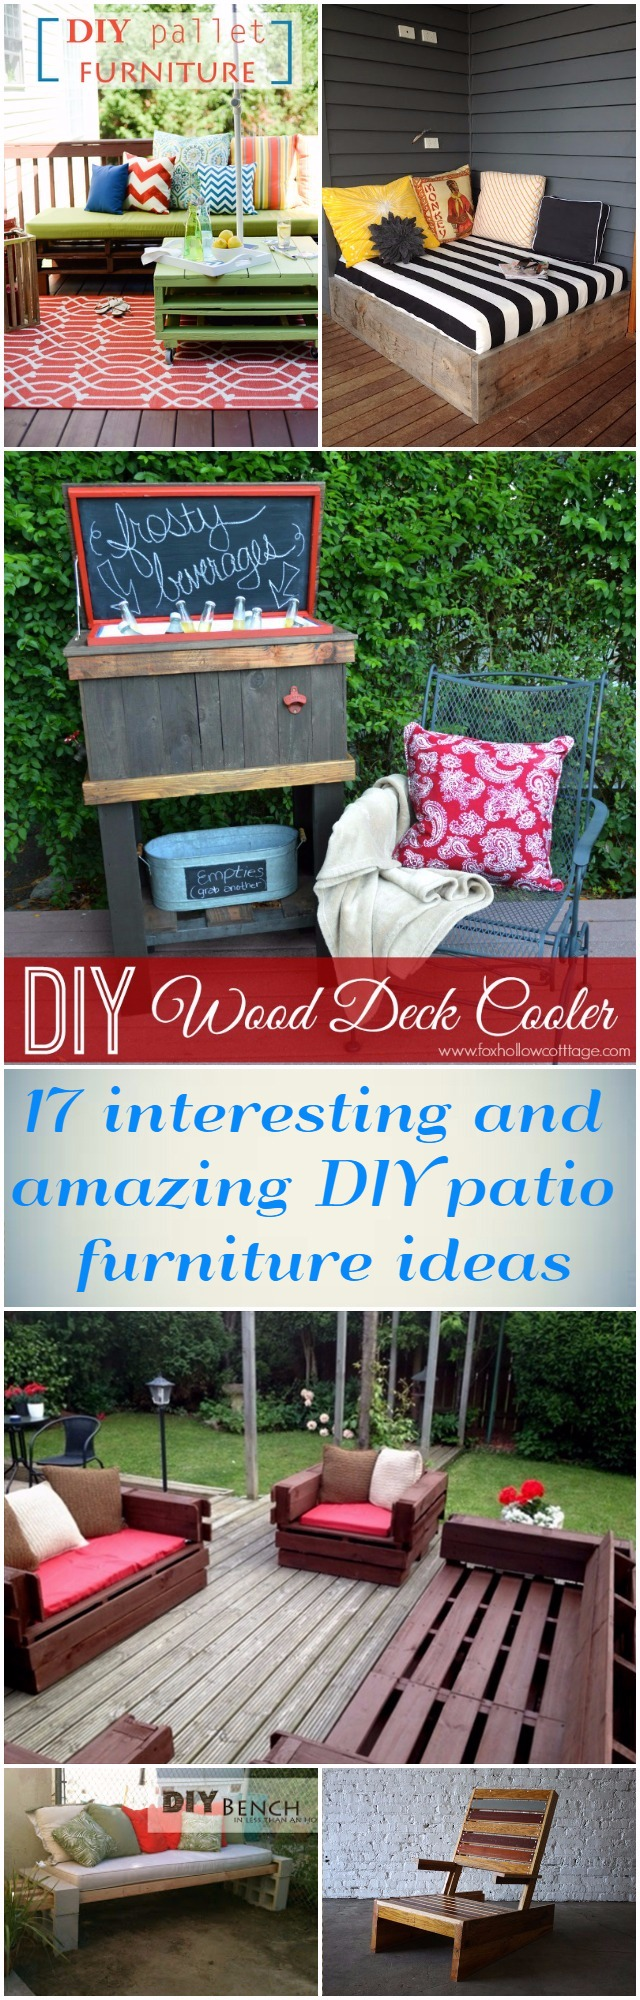 17 interesting and amazing DIY patio furniture ideas 1 17 Interesting And Amazing DIY Patio Furniture Ideas